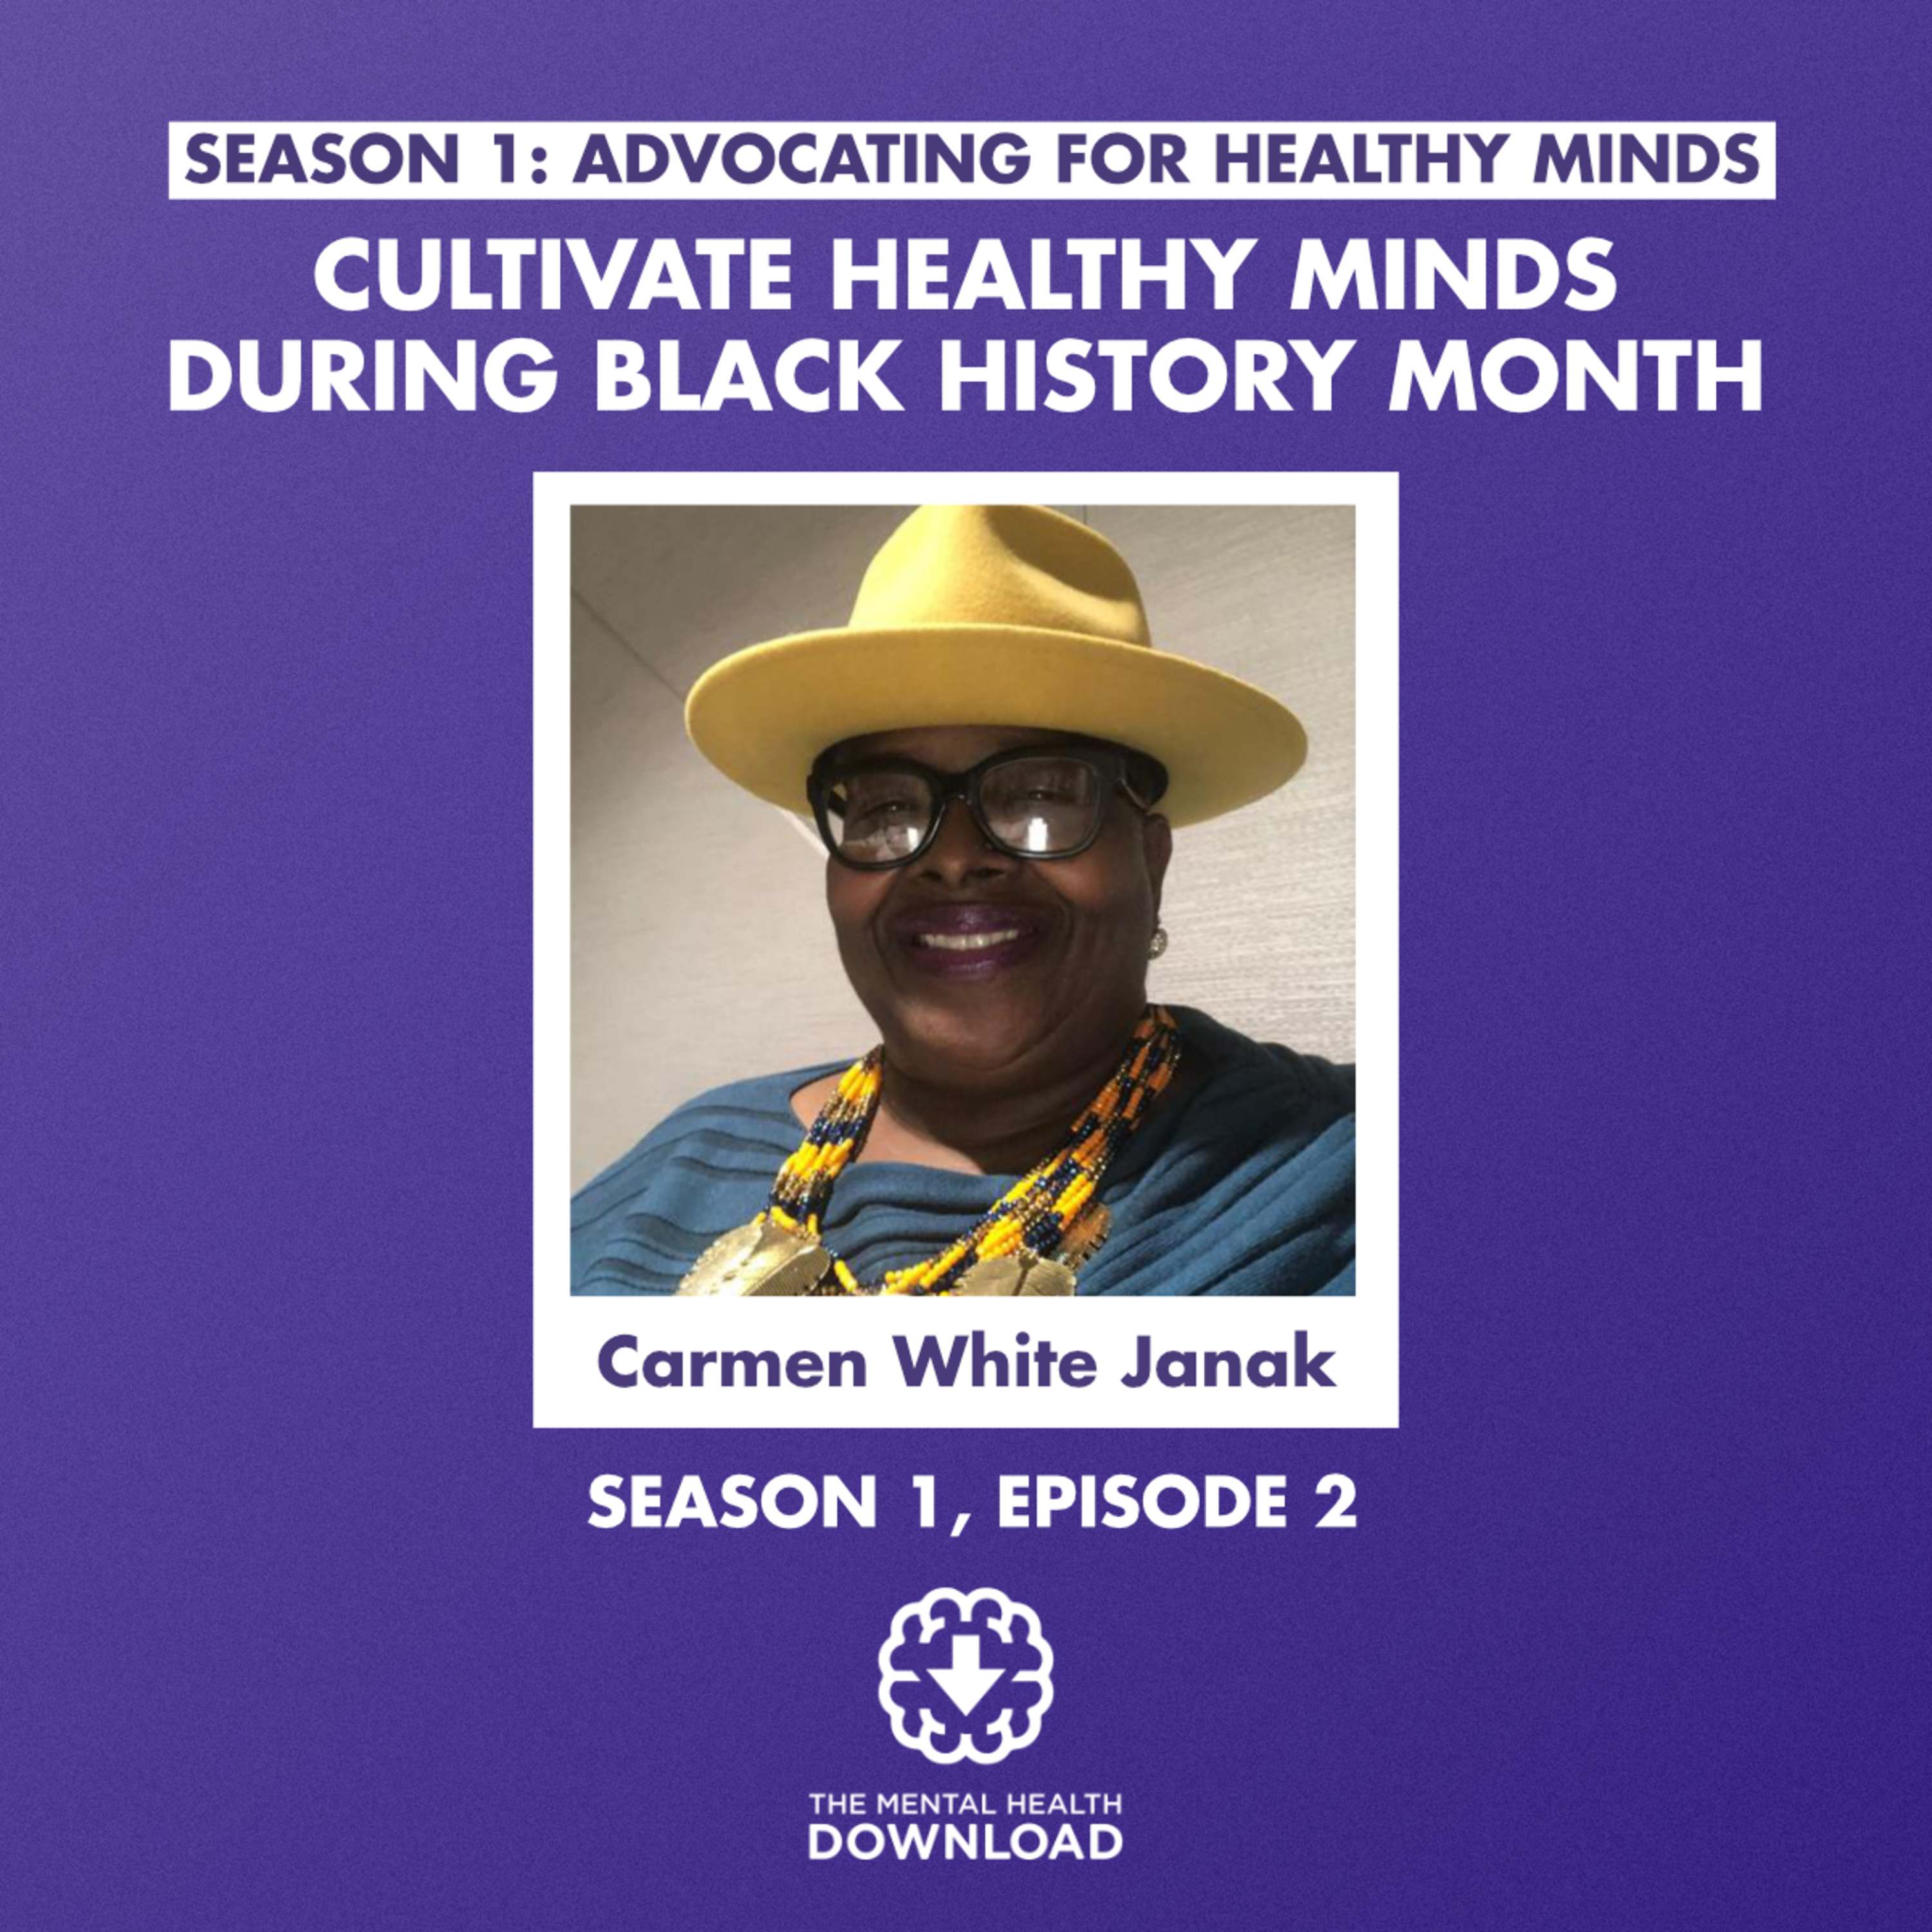 Mental Health Download: Exploring Mental Illness, Suicide, Homelessness and Incarceration - Cultivate Healthy Minds During Black History Month with Carmen White Janak